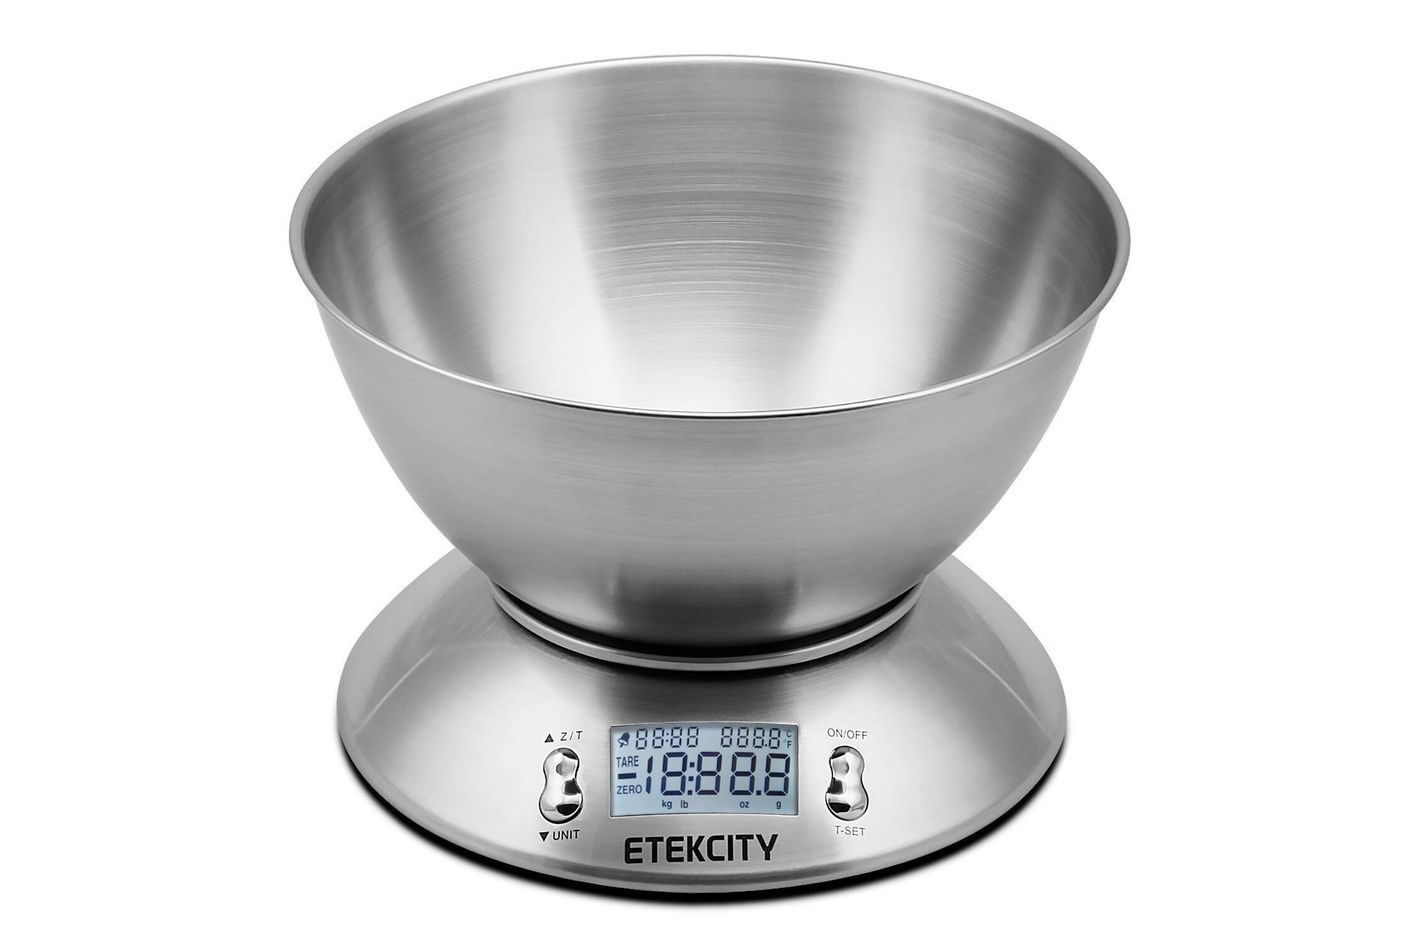 etekcity stainless steel kitchen scale with stainless steel bowl